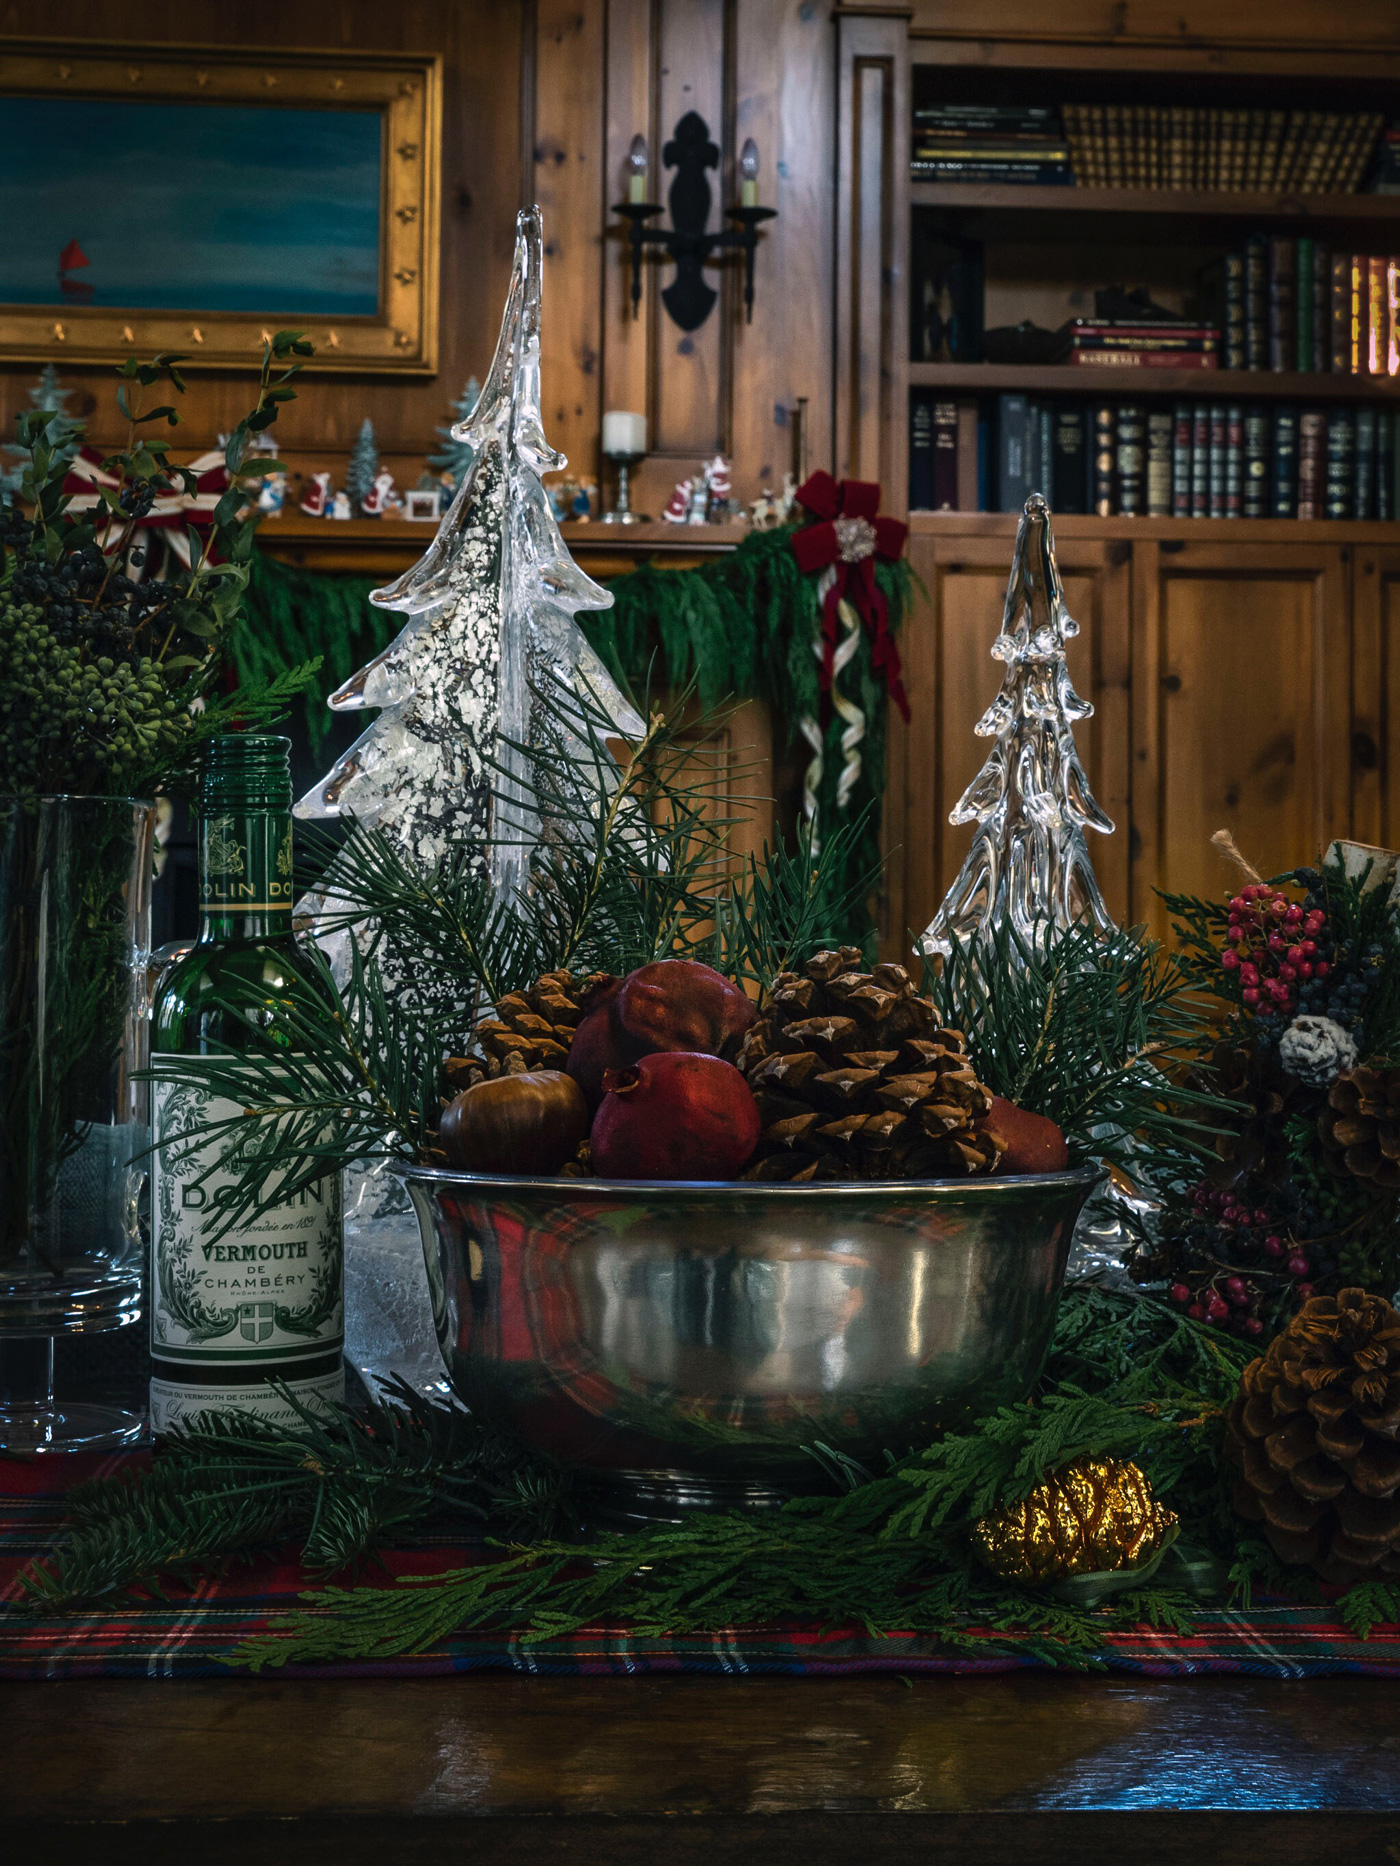 Pewter bowl filled with ornaments and pinecones